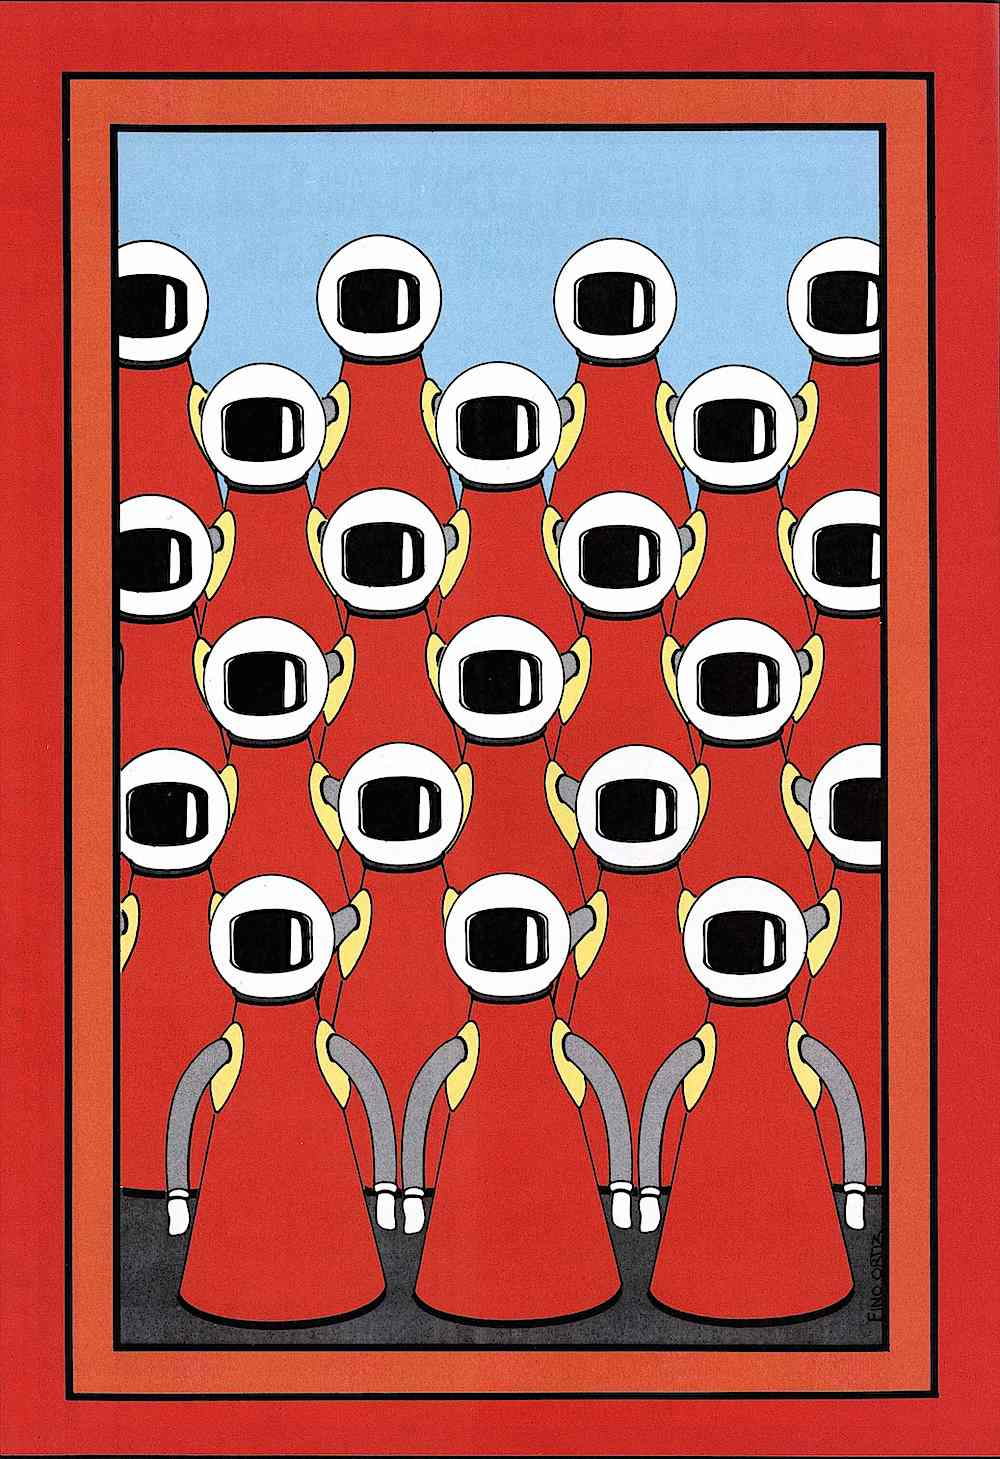 a 1978 illustration of conformity in red